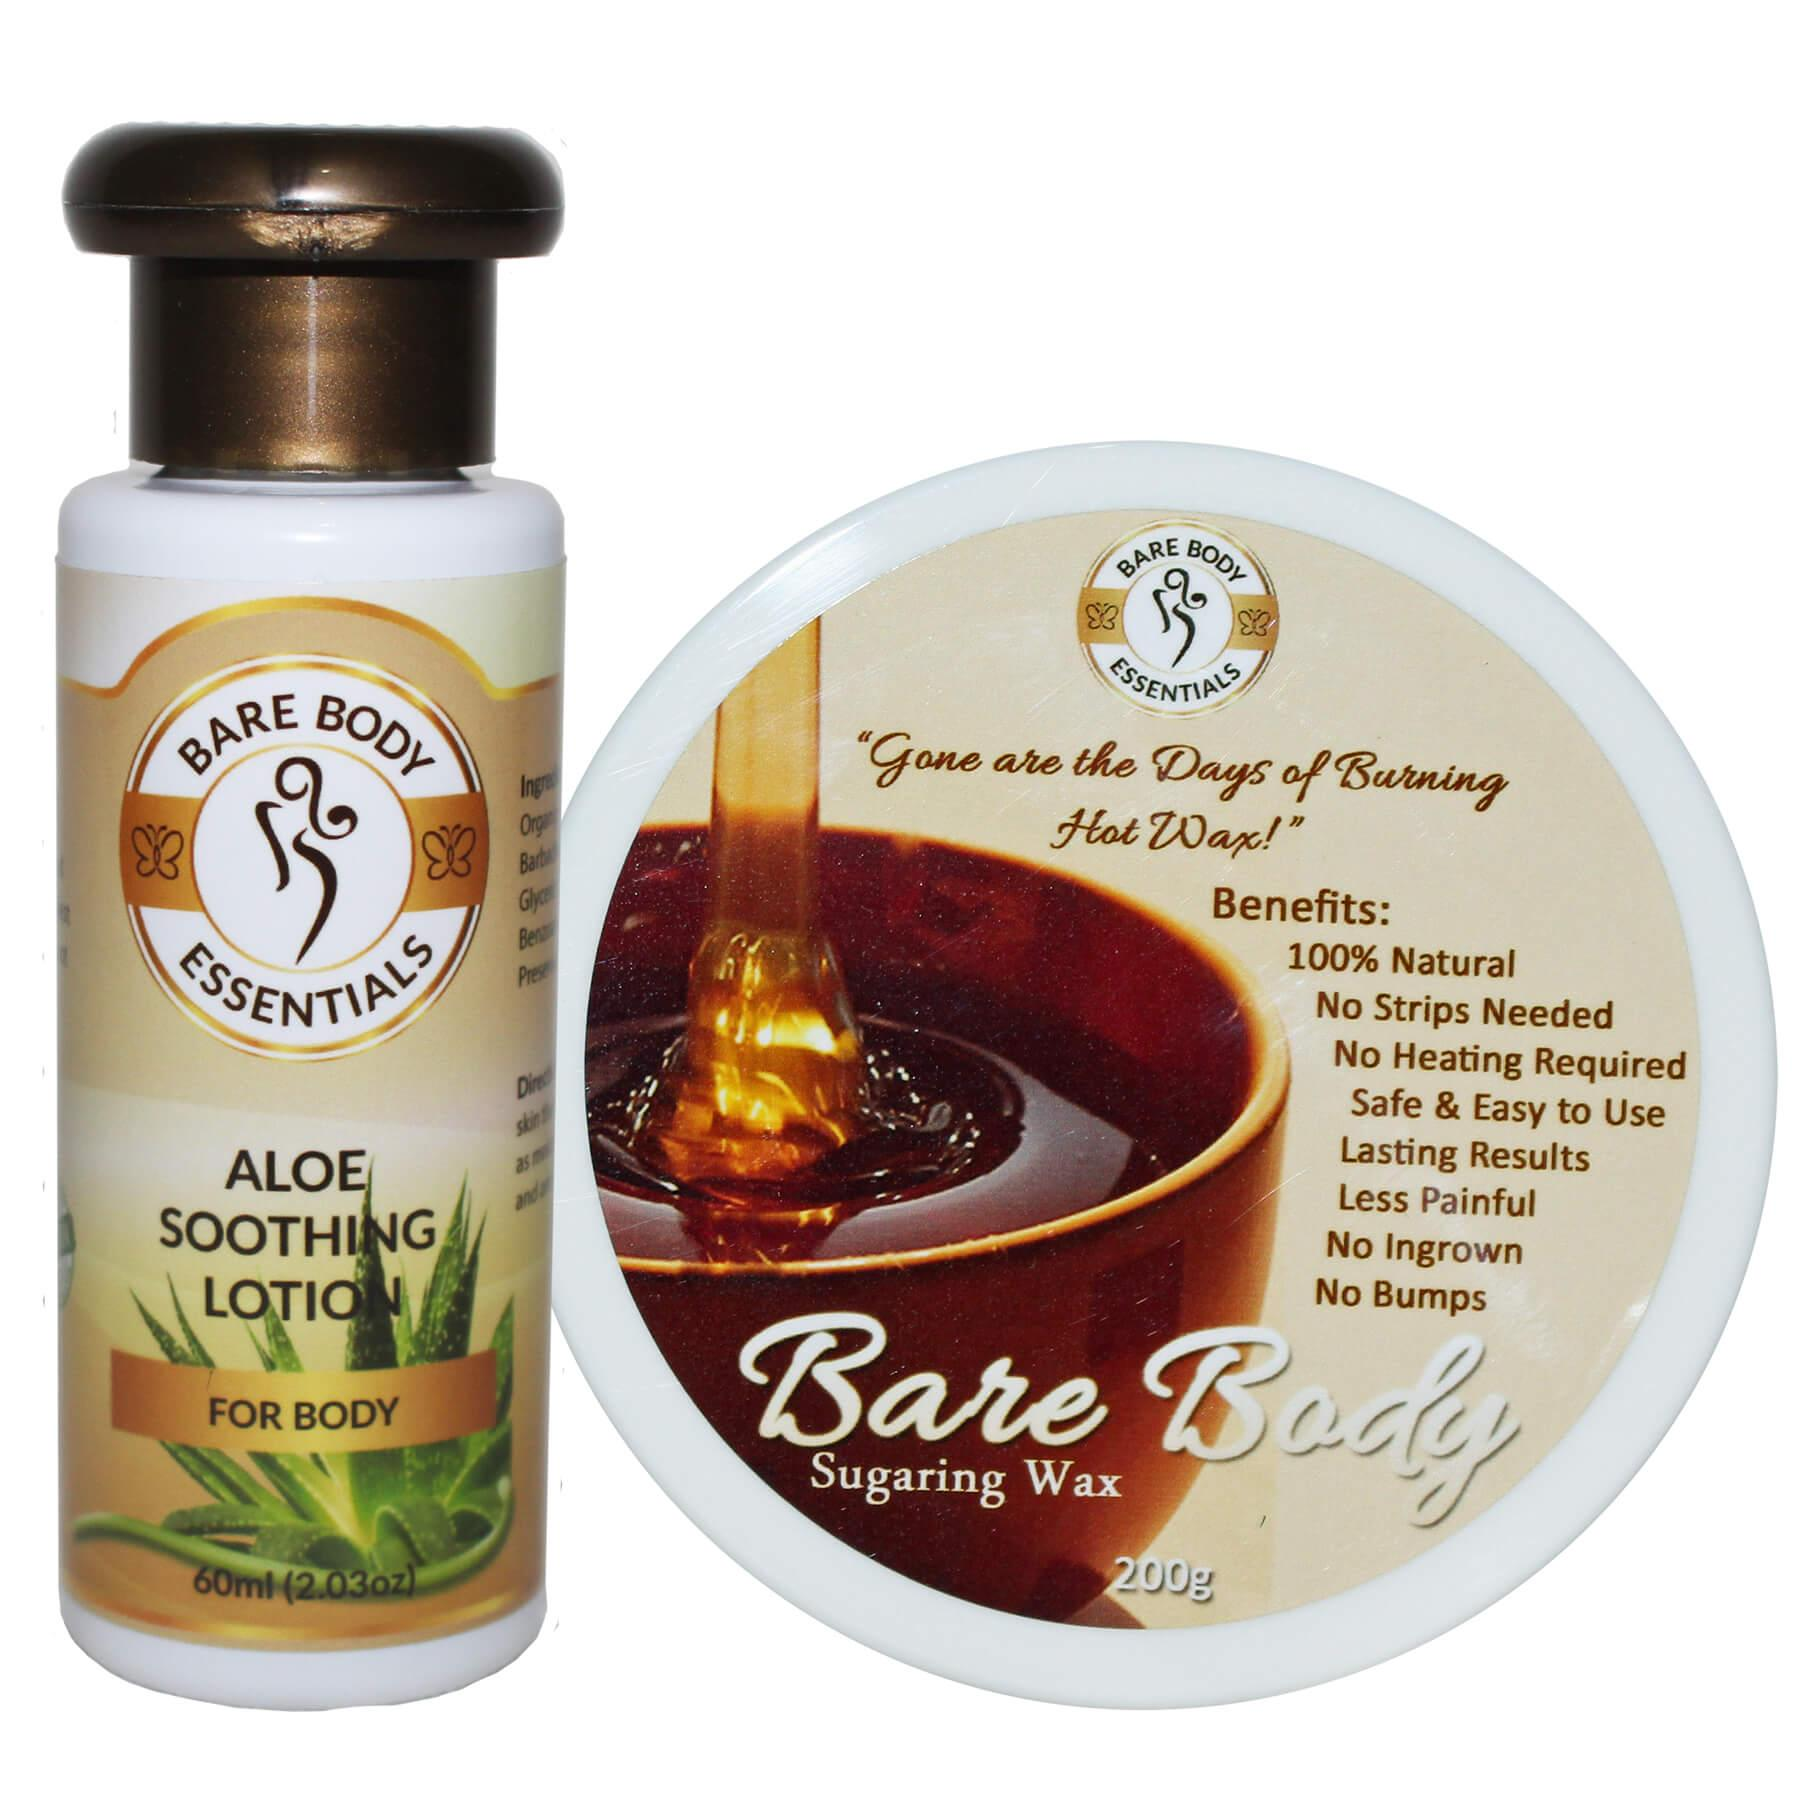 Bare Body Sugar Wax Regular (200g) with Aloe Soothing Lotion 60ml